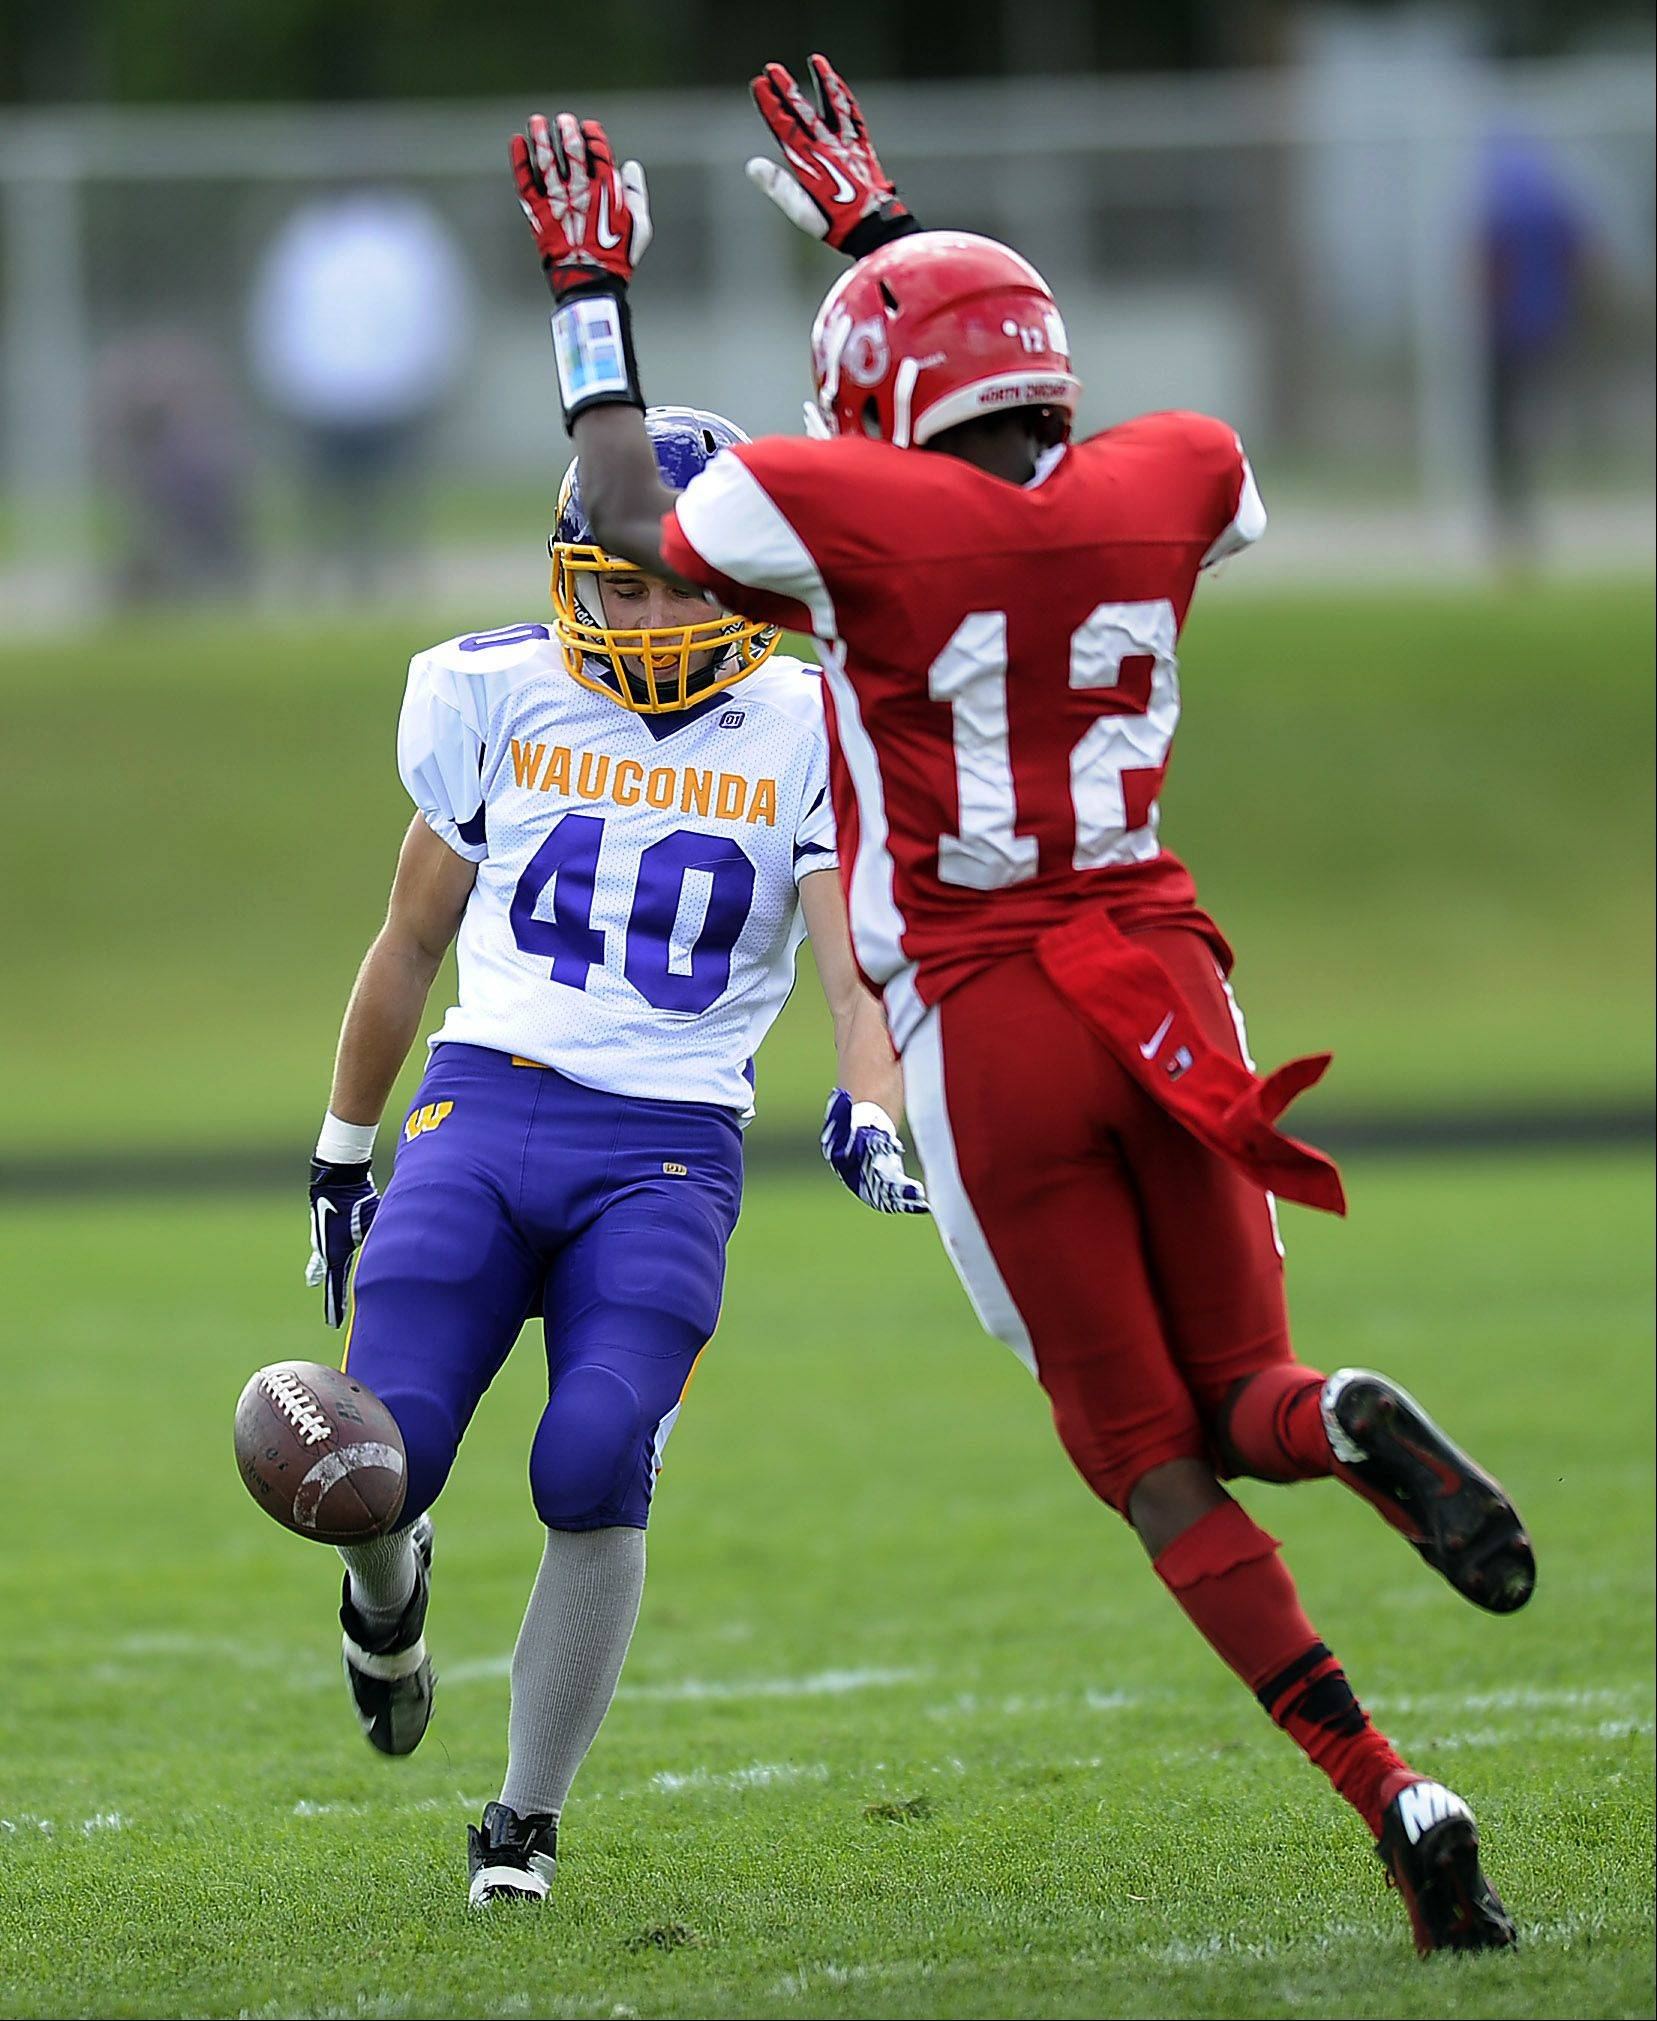 Wauconda's Elliot Hill has his punt blocked by North Chicago's Donte Rowell in the first quarter at North Chicago on Saturday.